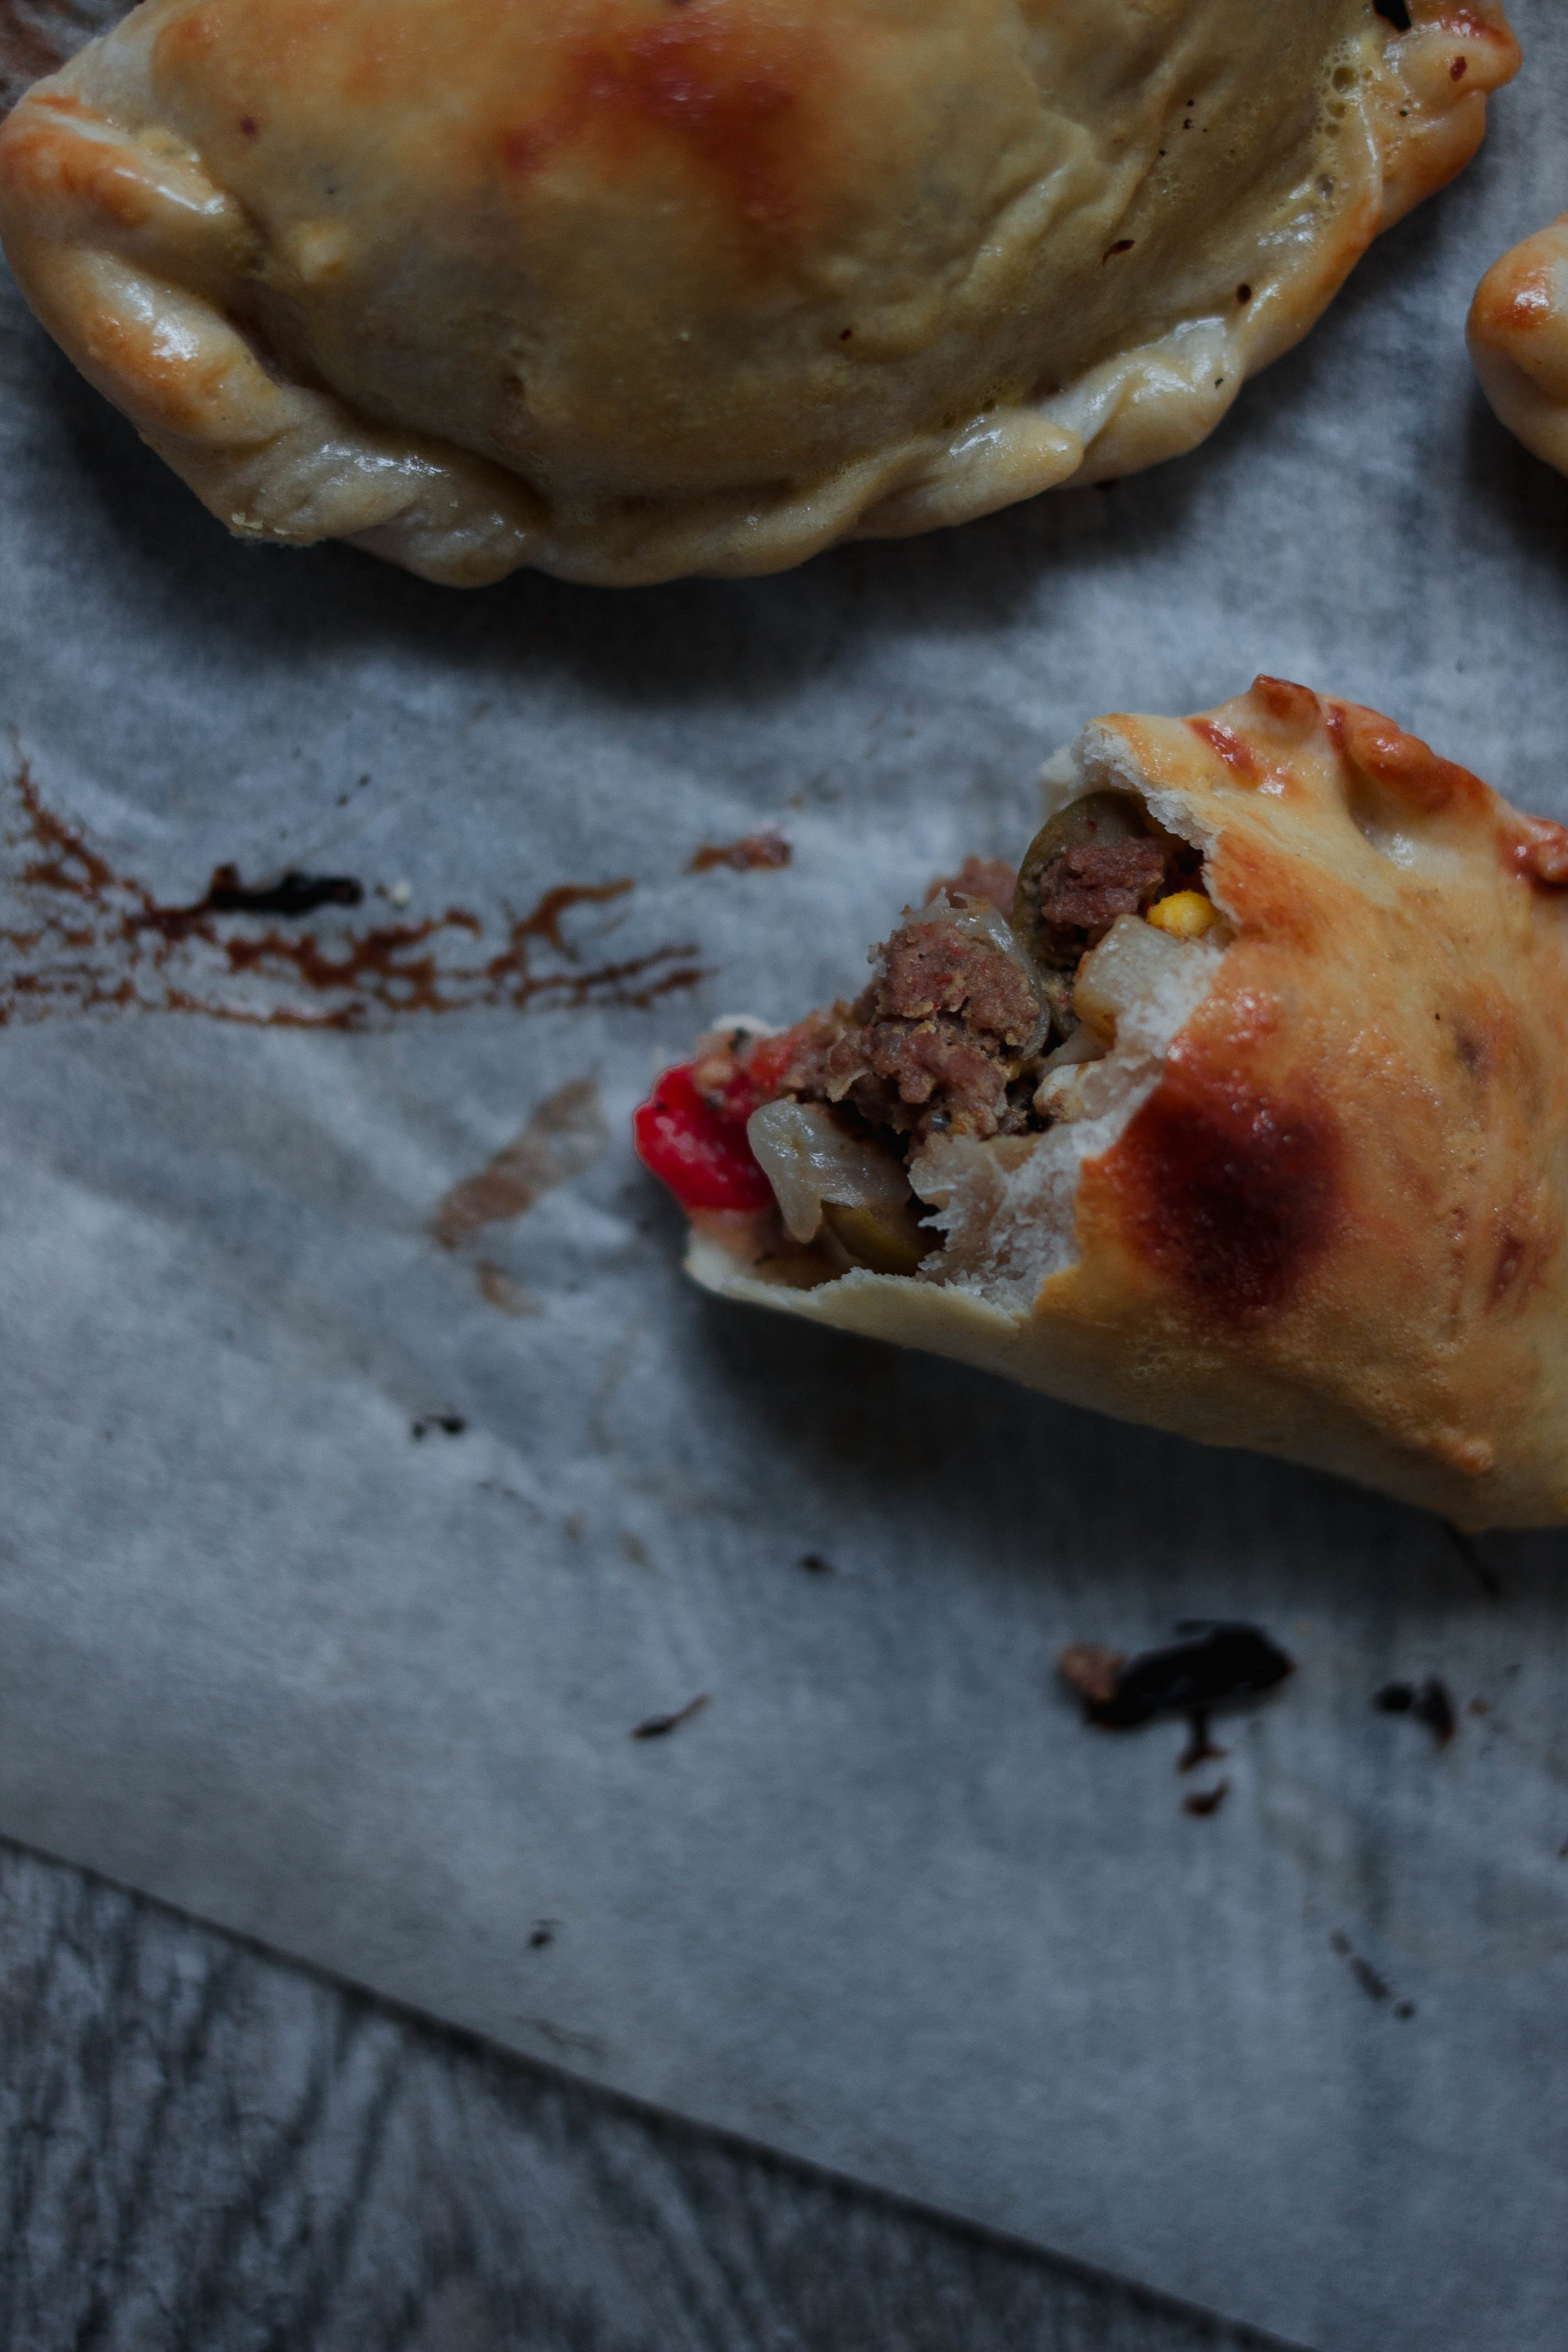 How to make Argentinean beef empanadas with homemade empanada dough/shells | from scratch, mostly